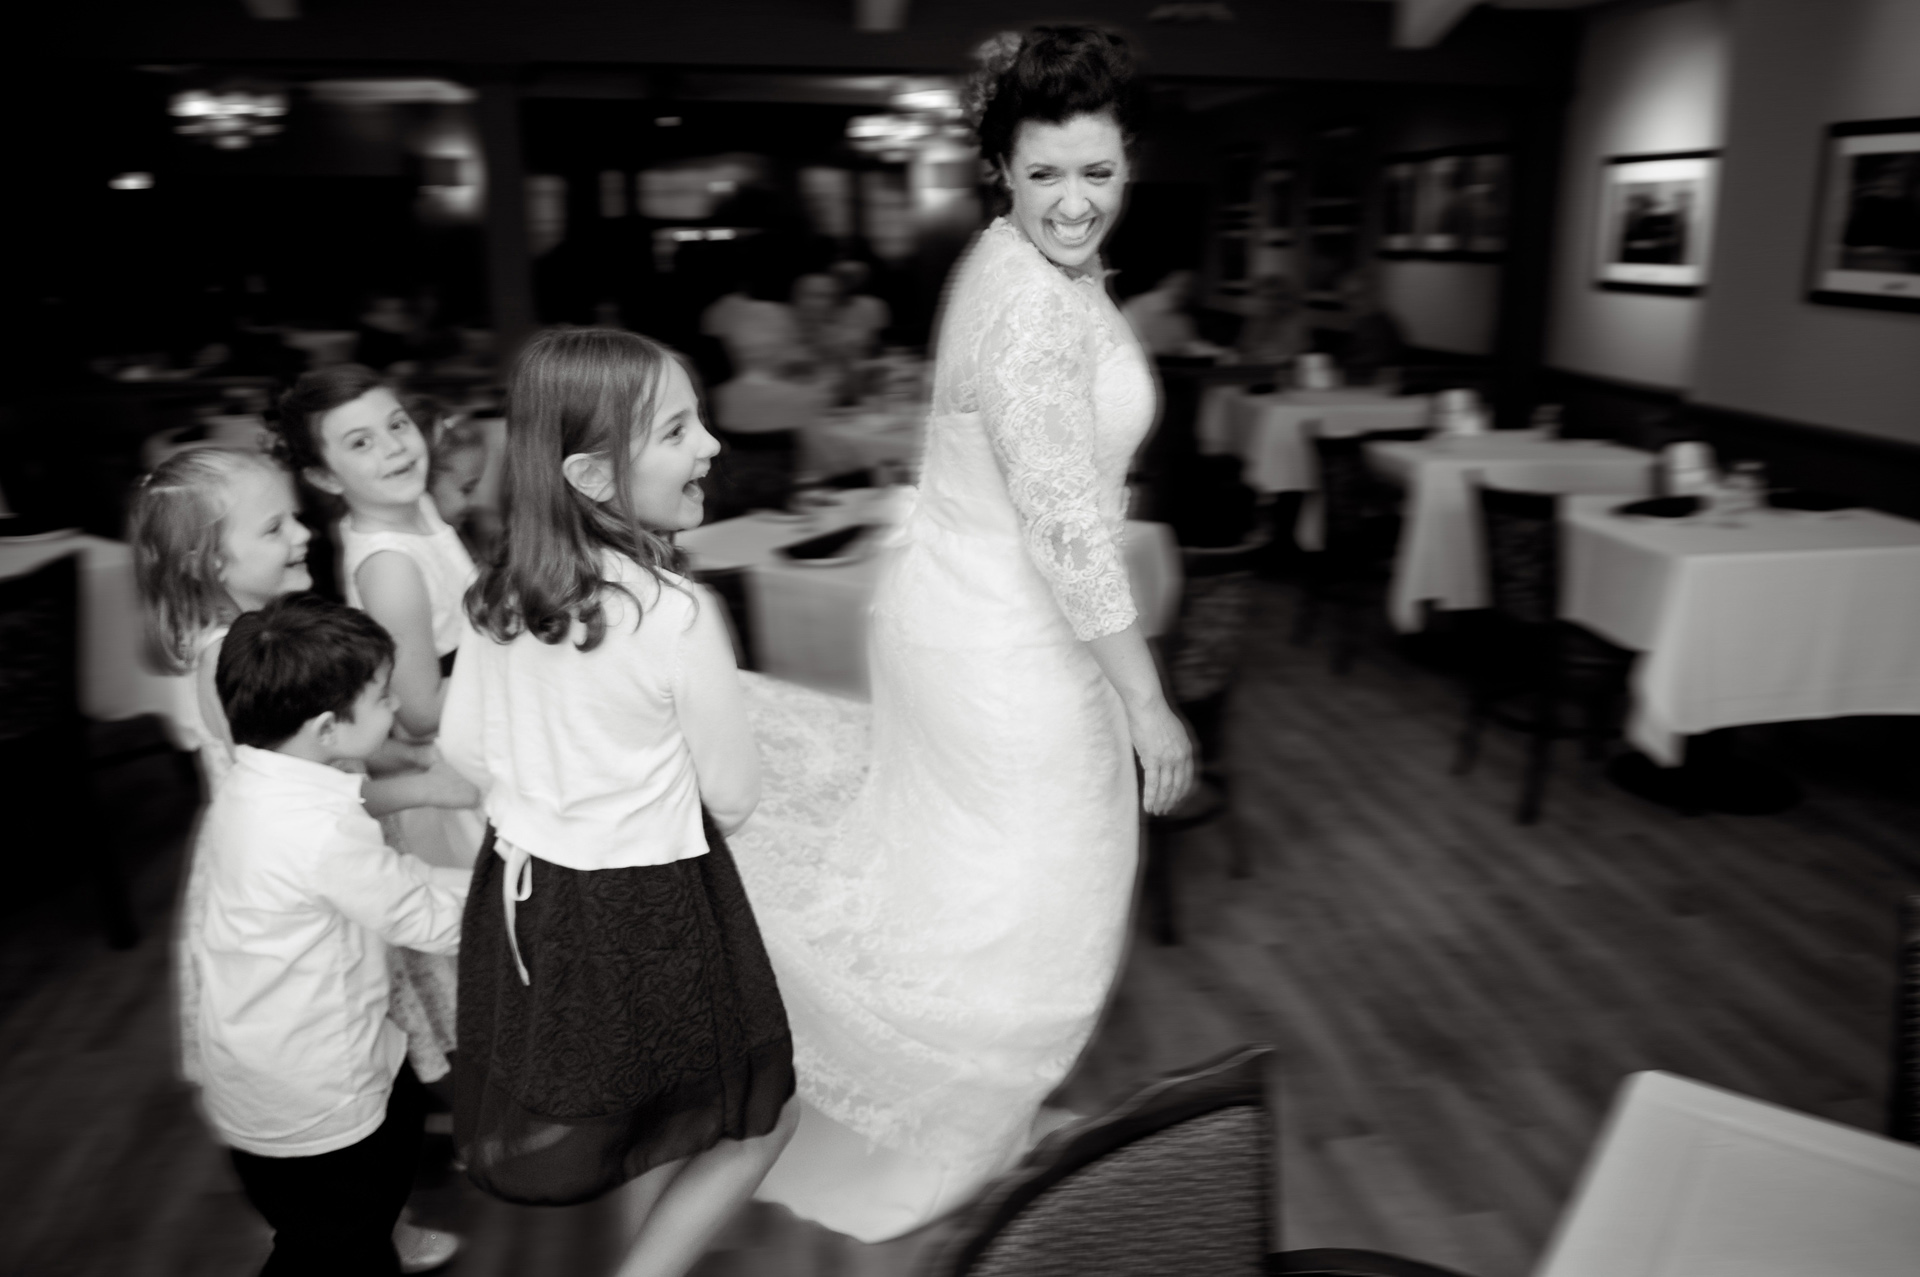 Michigan same sex wedding wedding photographer's photo of Emily and her entourage of bustle wranglers pass through the restaurant after her Michigan same sex wedding in Livonia, Michigan.